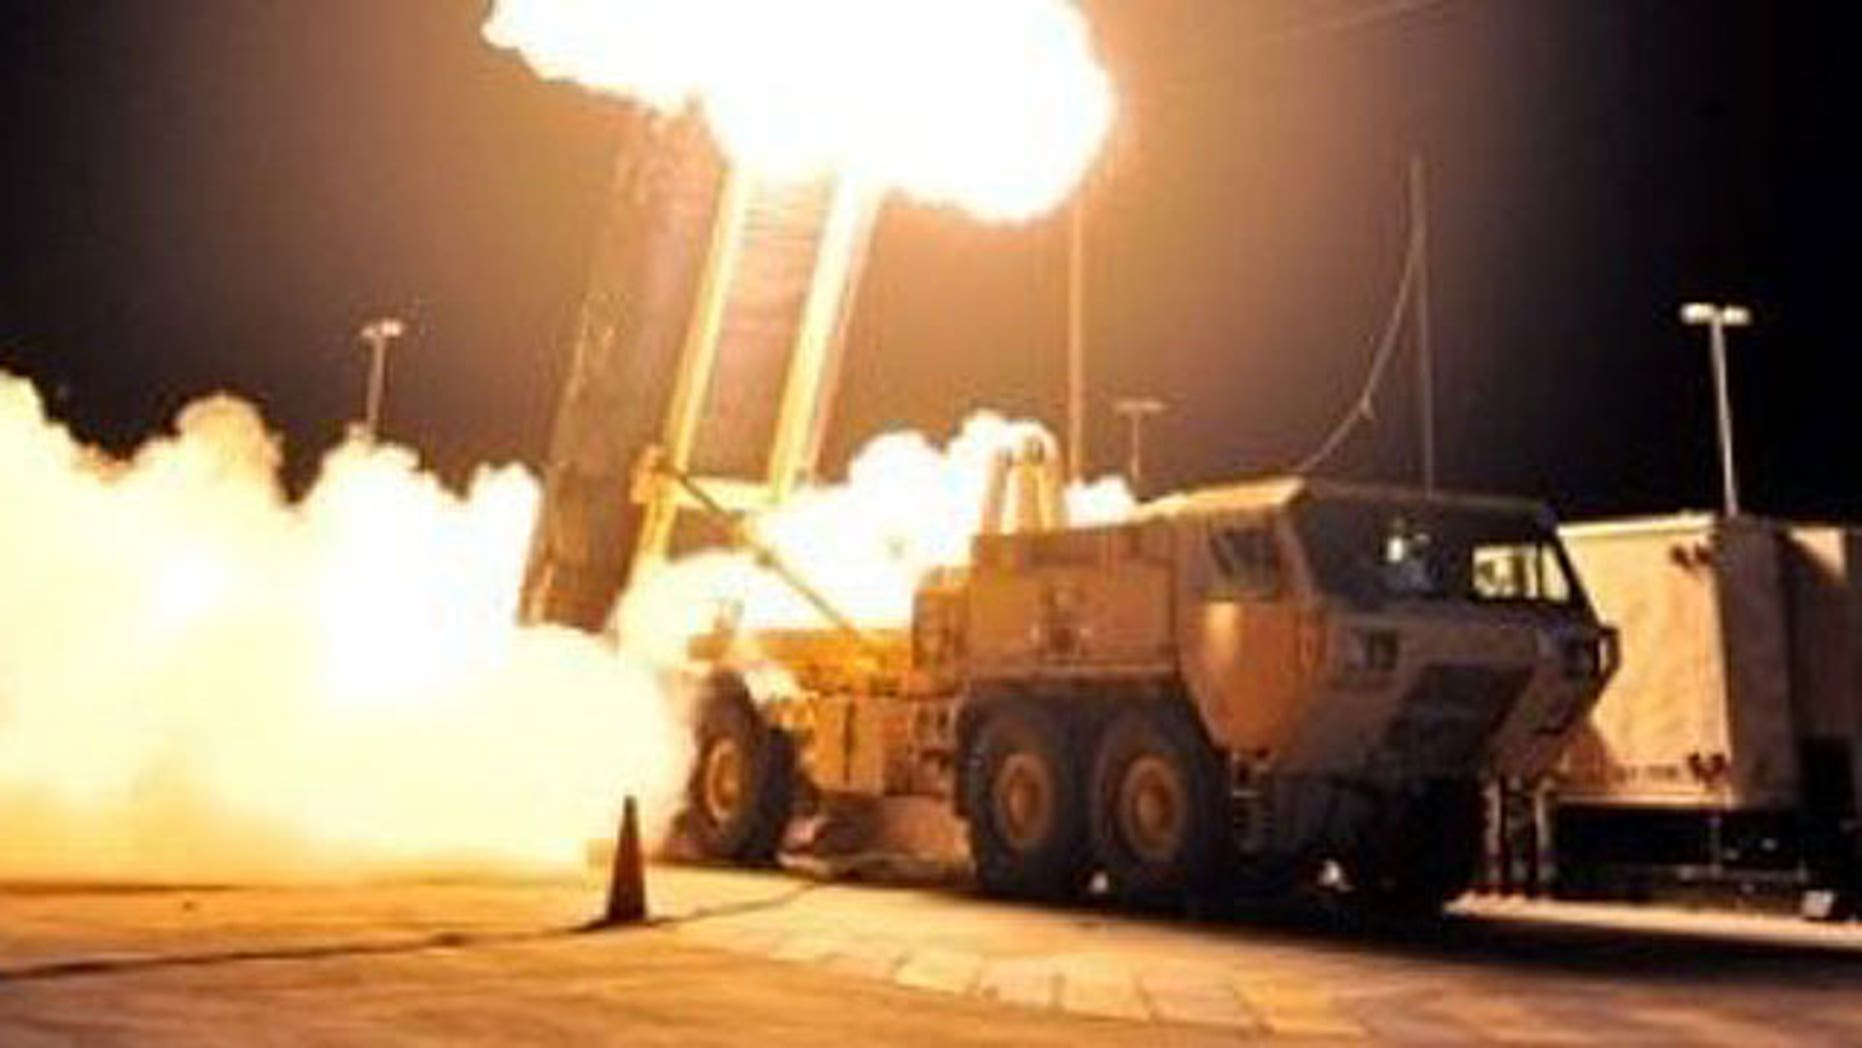 October 5, 2011: In this photo provided by the U.S. Missile Defense Agency, a Terminal High Altitude Area Defense (THAAD) interceptor missile is launched during the system's first operational test at the Pacific Missile Range Facility in Kauai, Hawaii.